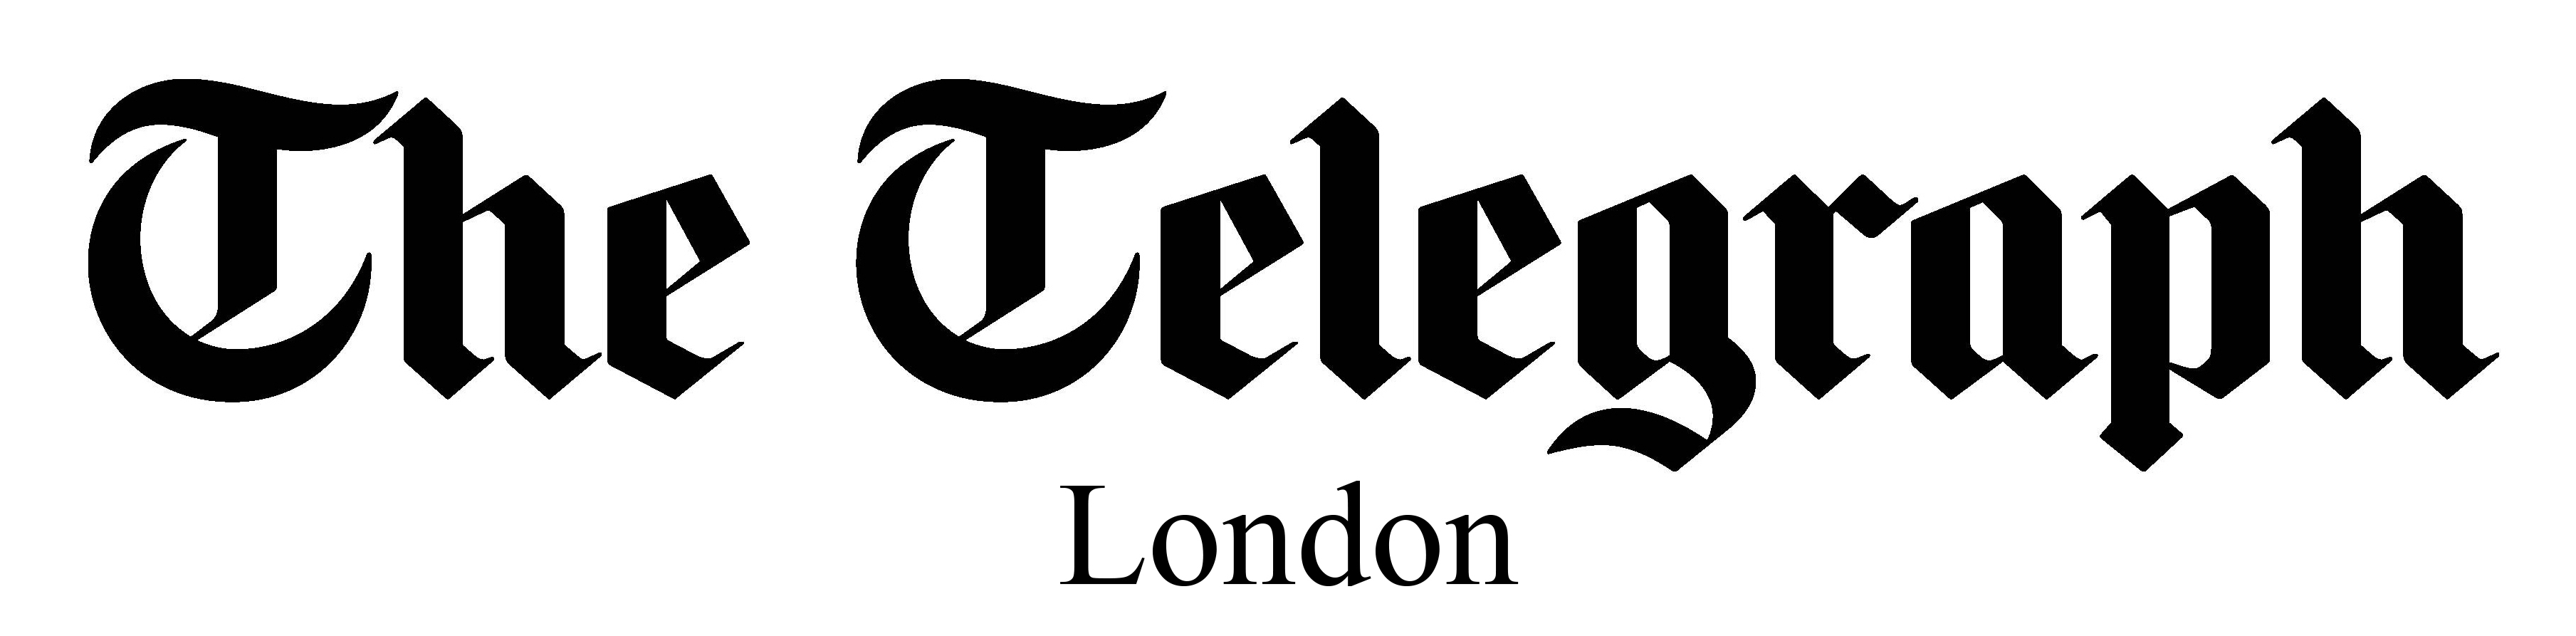 The Telegraph London